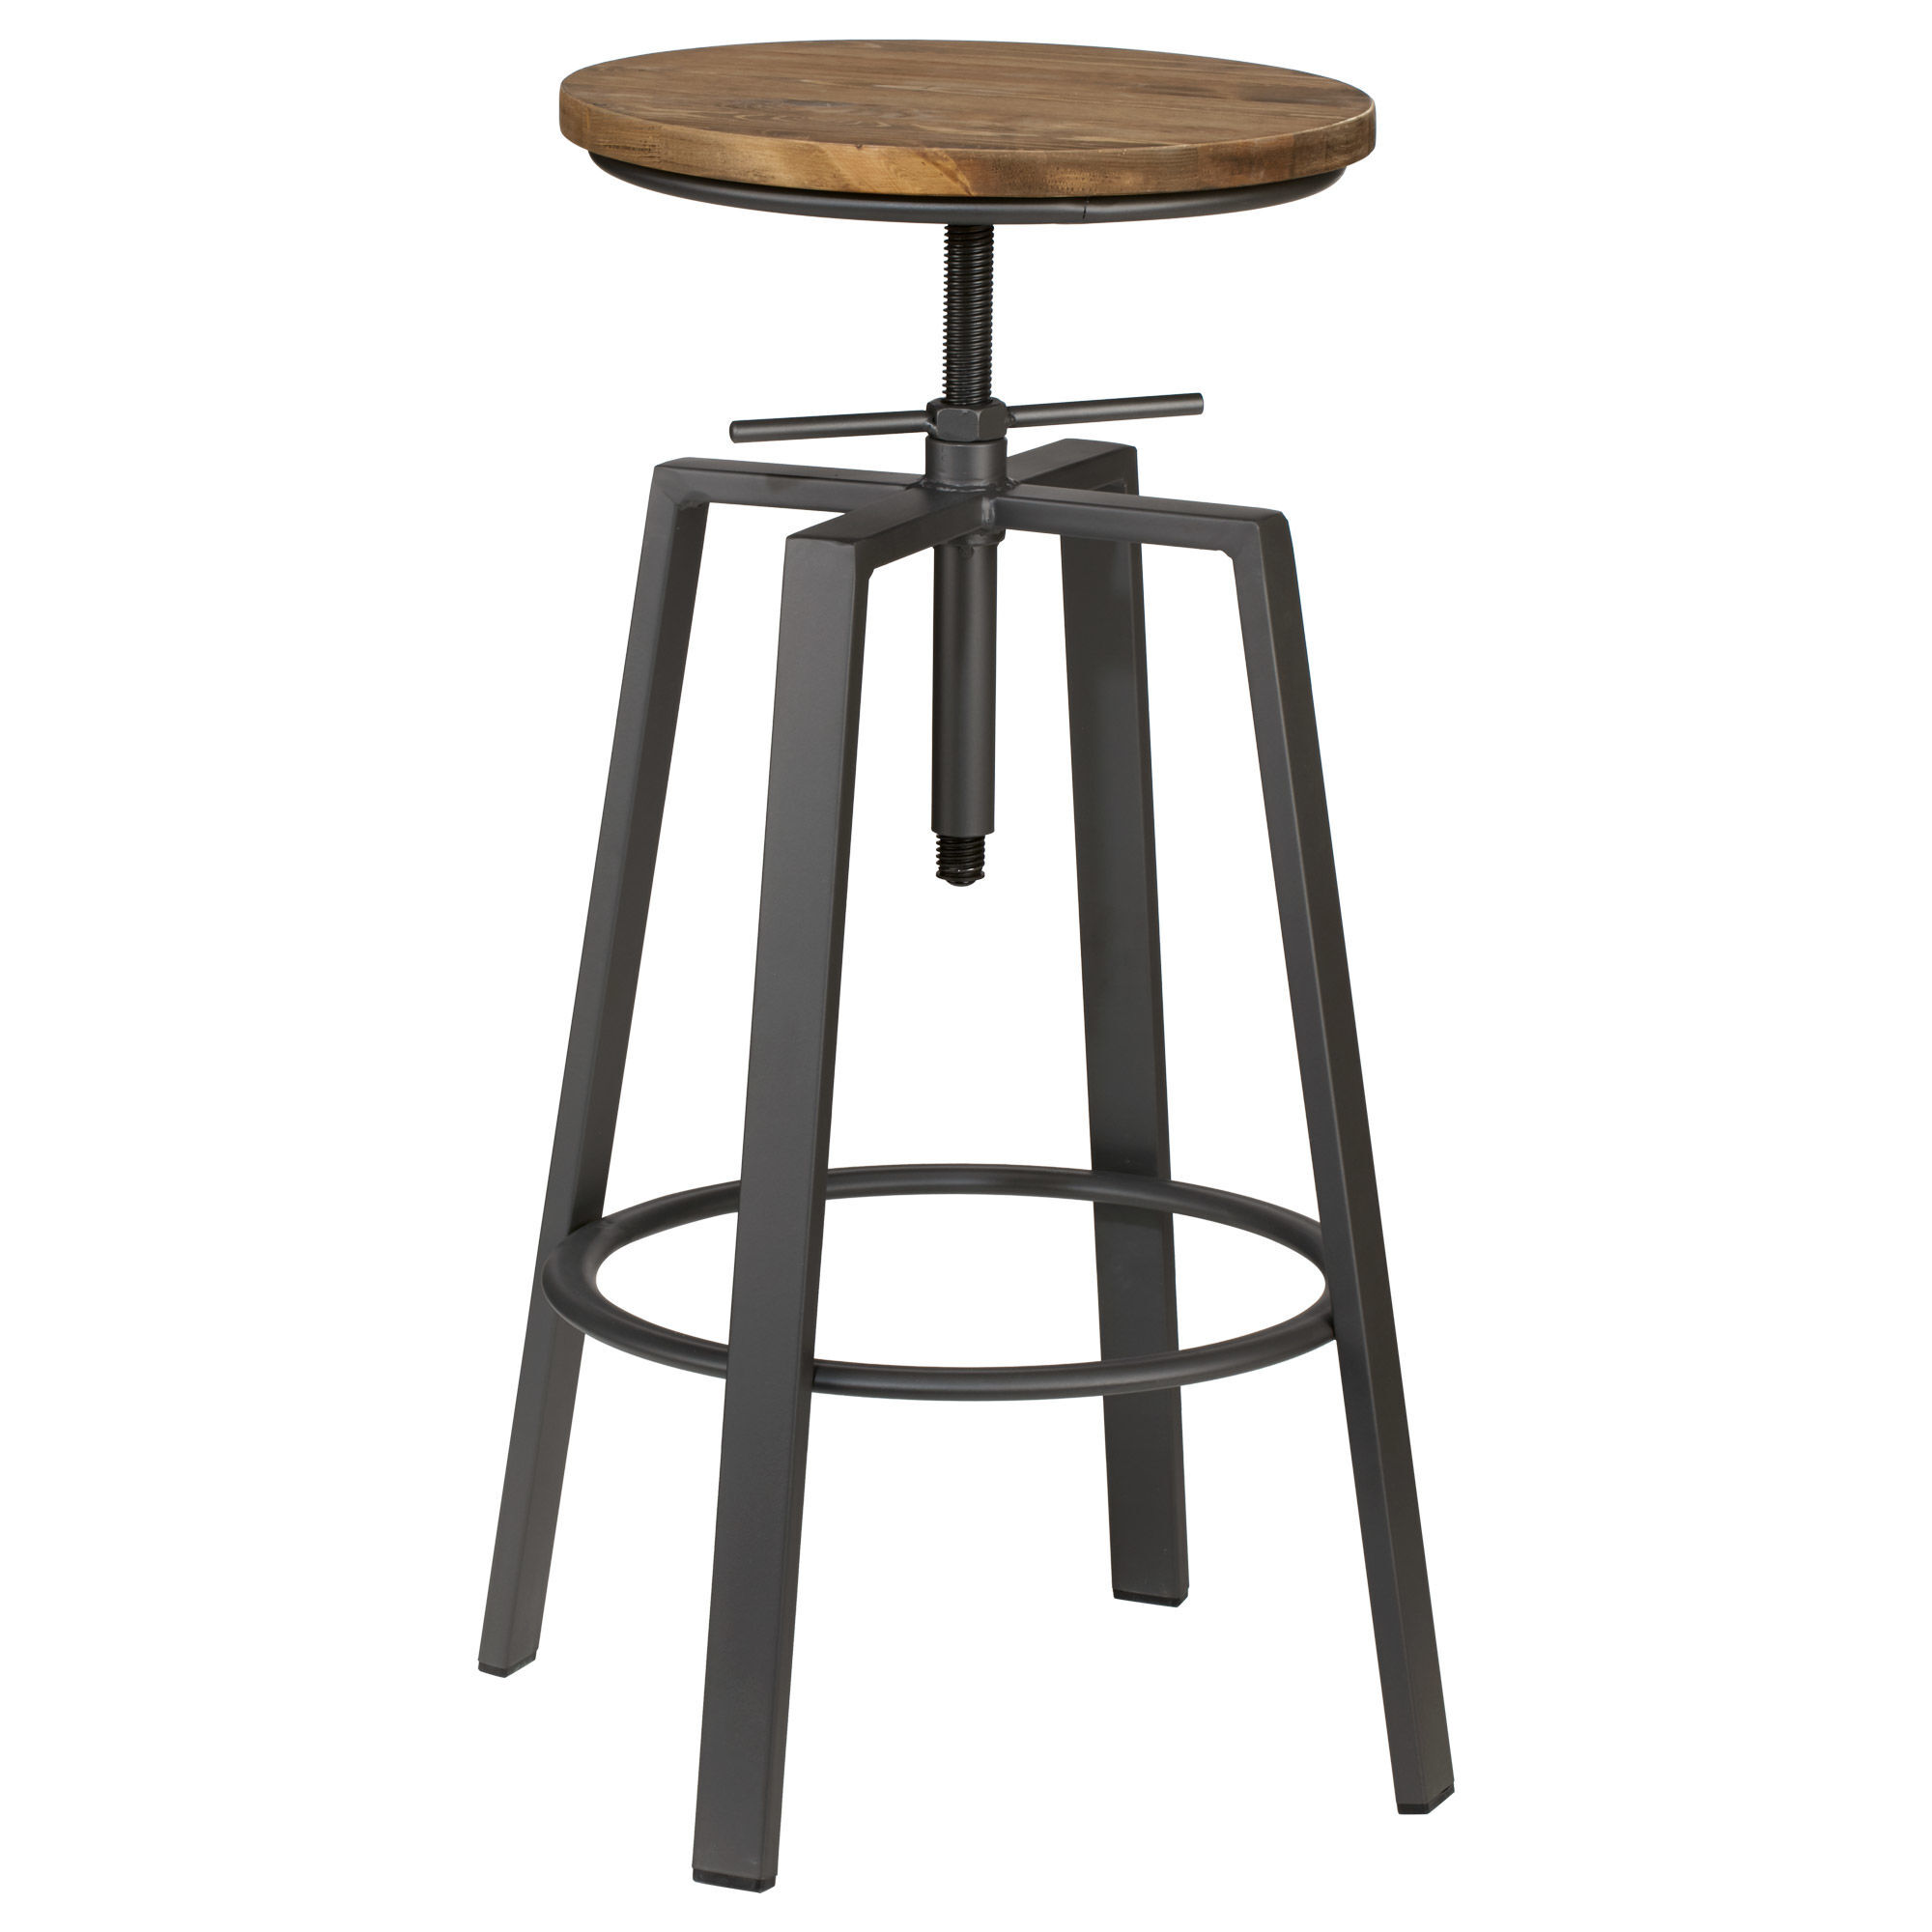 Wood And Metal Bar Stools Adjustable Solid Elm Wood And Gun Metal Bar Stool